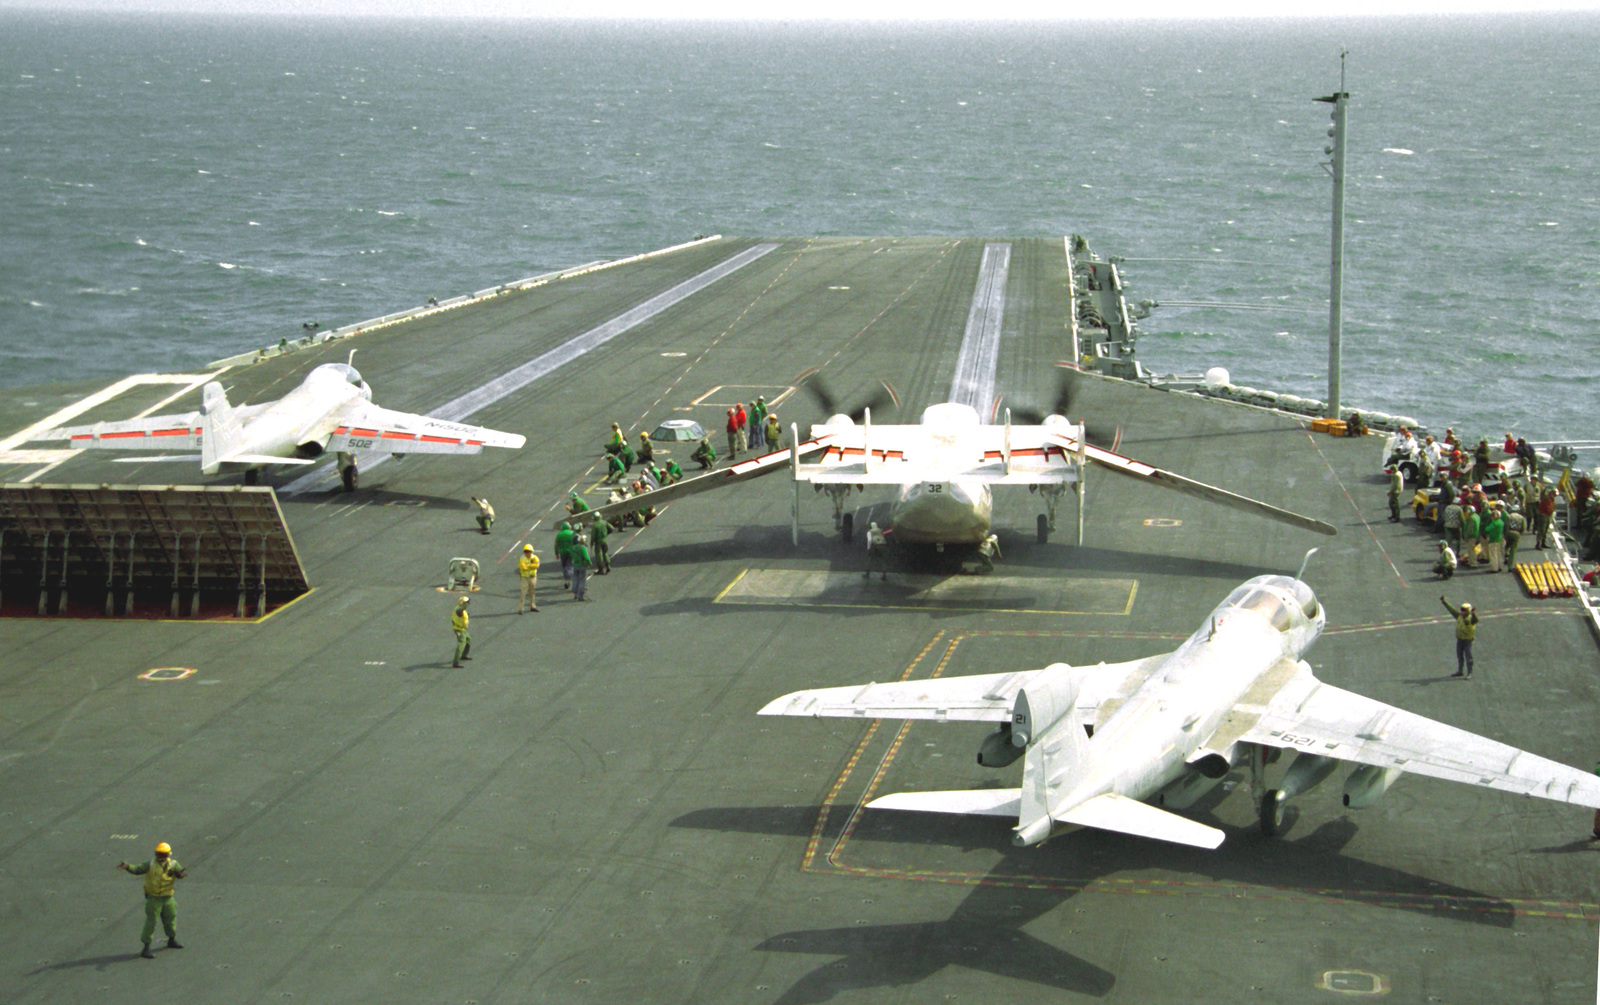 An Attack Squadron 95 (VA-95) A-6E Intruder aircraft, left, and a Fleet Logistic Support Squadron 30 (VRC-30) C-2A Greyhound aircraft, center, are readied for launch on the bow catapults aboard the nuclear-powered aircraft carrier USS ABRAHAM LINCOLN (CVN-72). A Tactical Electronic Warfare Squadron 135 (VAQ-135) EA-6B Prowler aircraft, right, waits to taxi into launch position. The LINCOLN is underway off the coast of Argentina